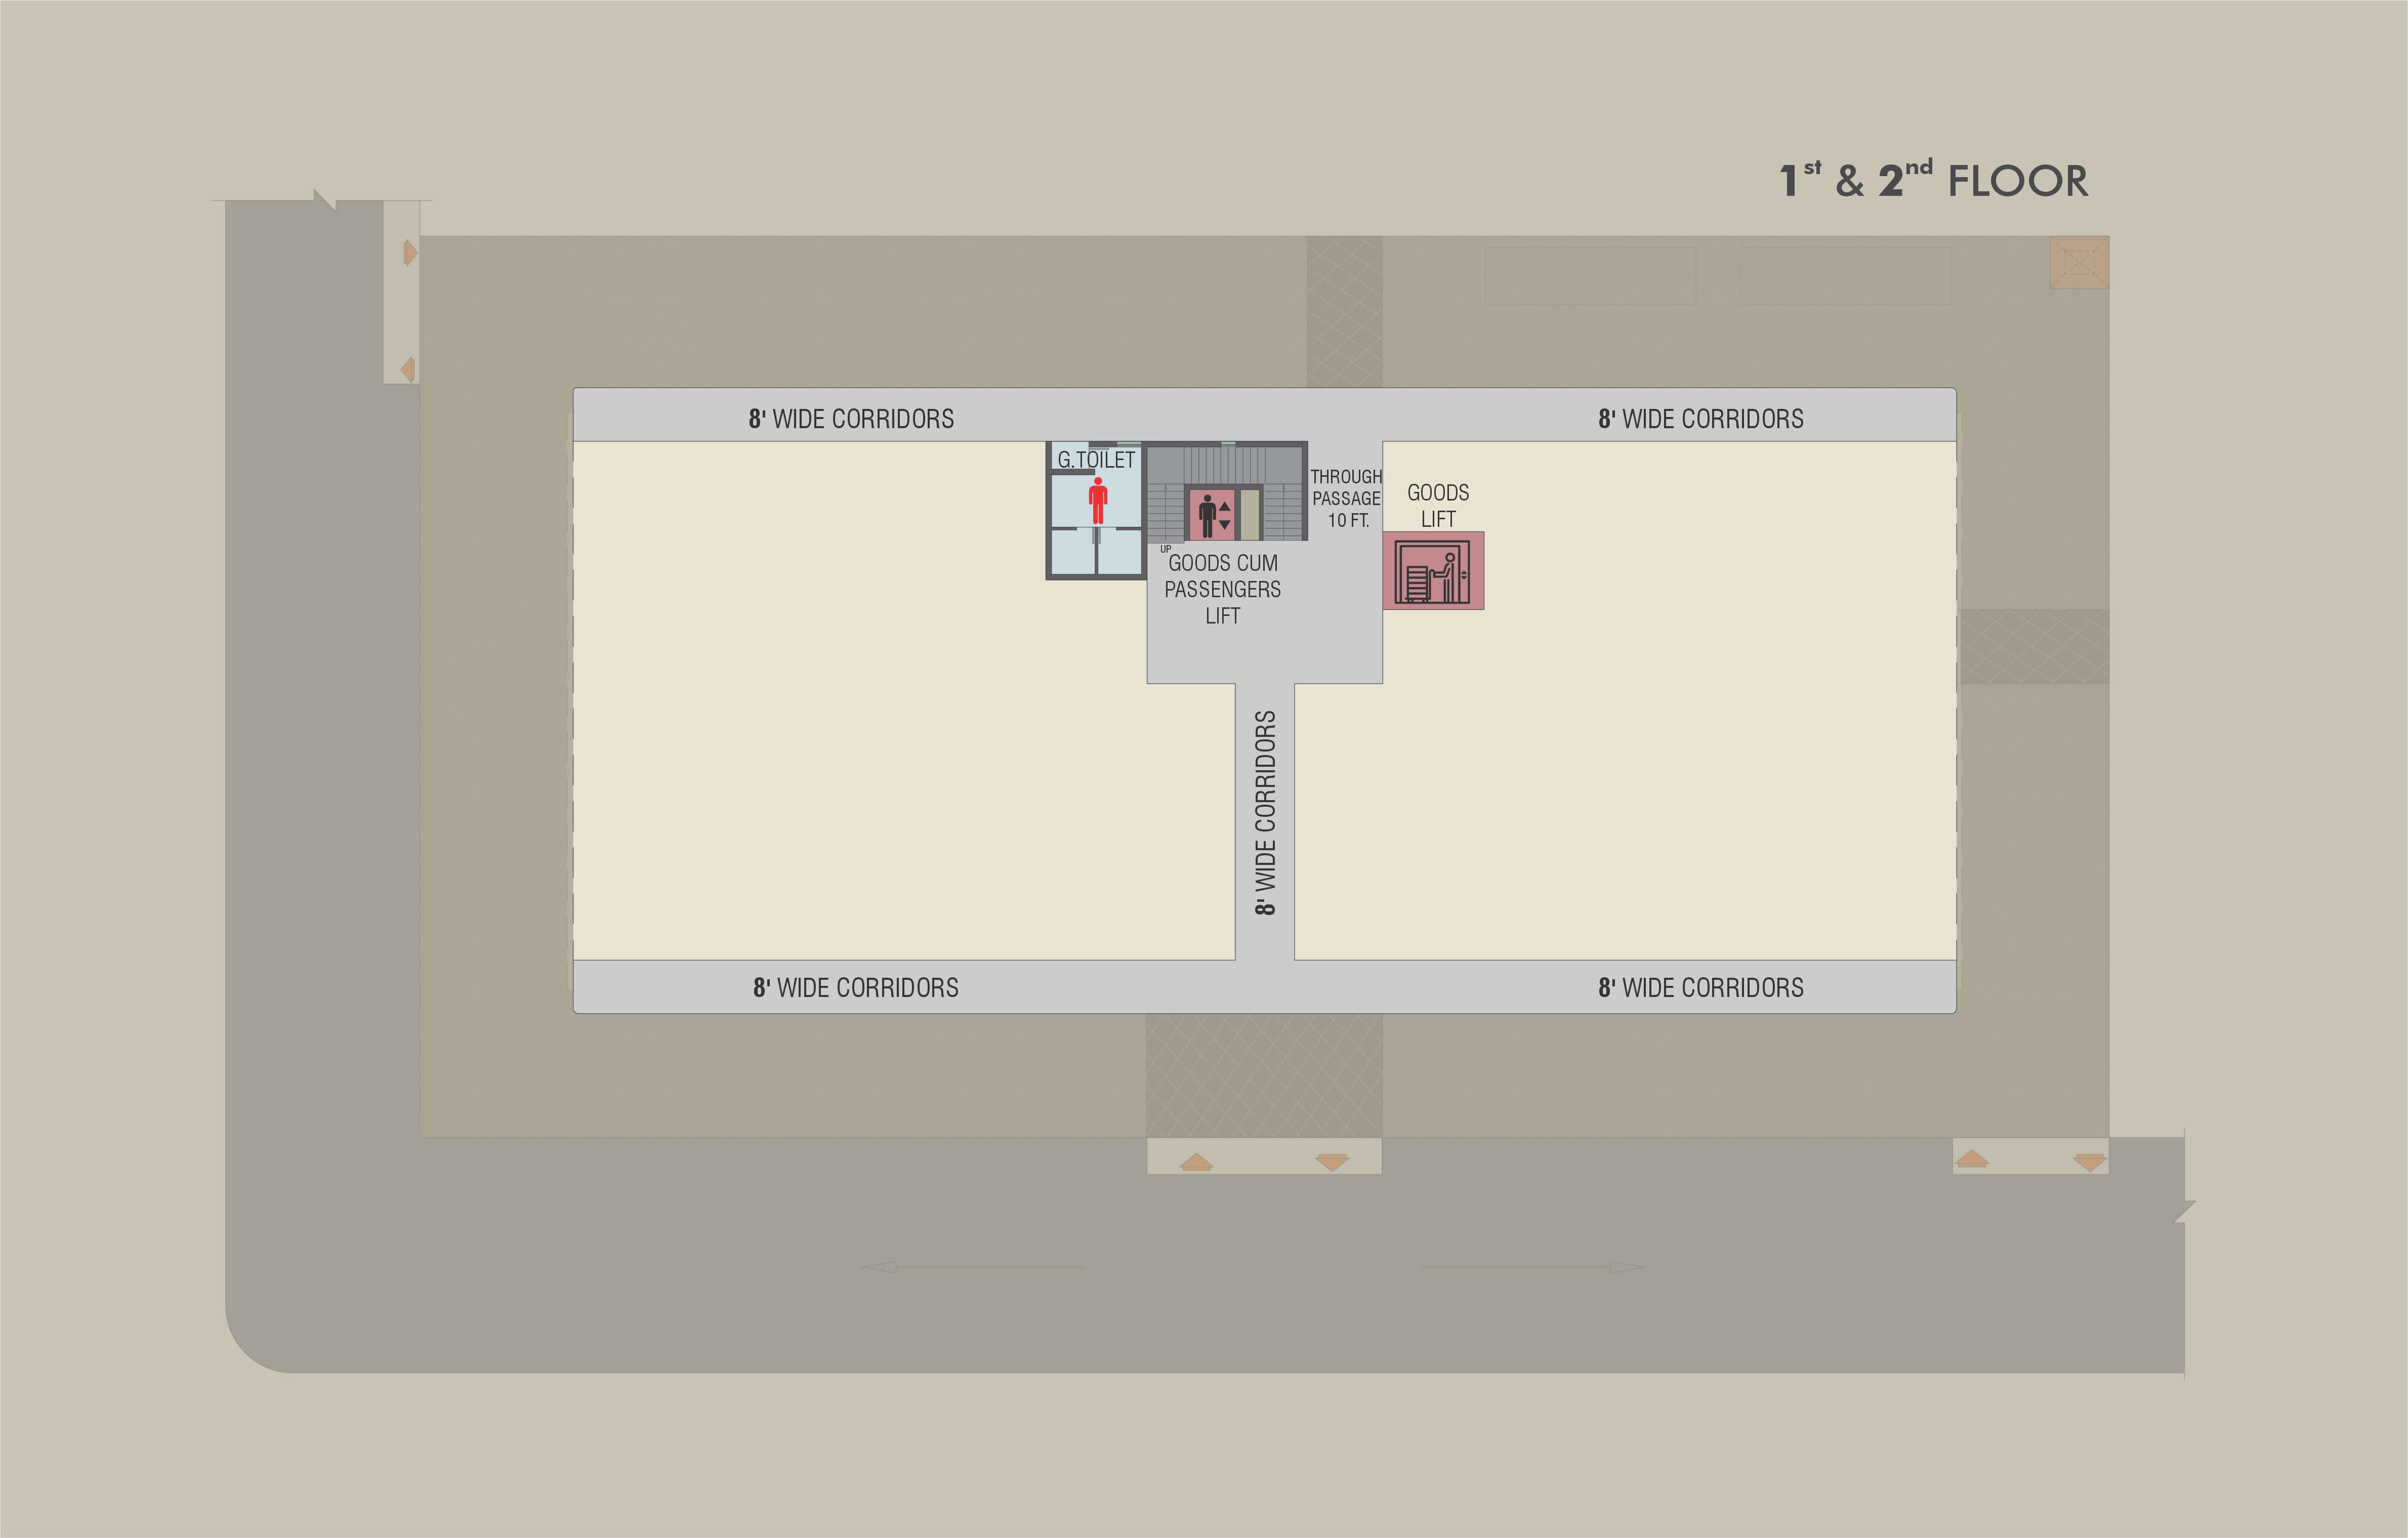 First & Second Floor Map